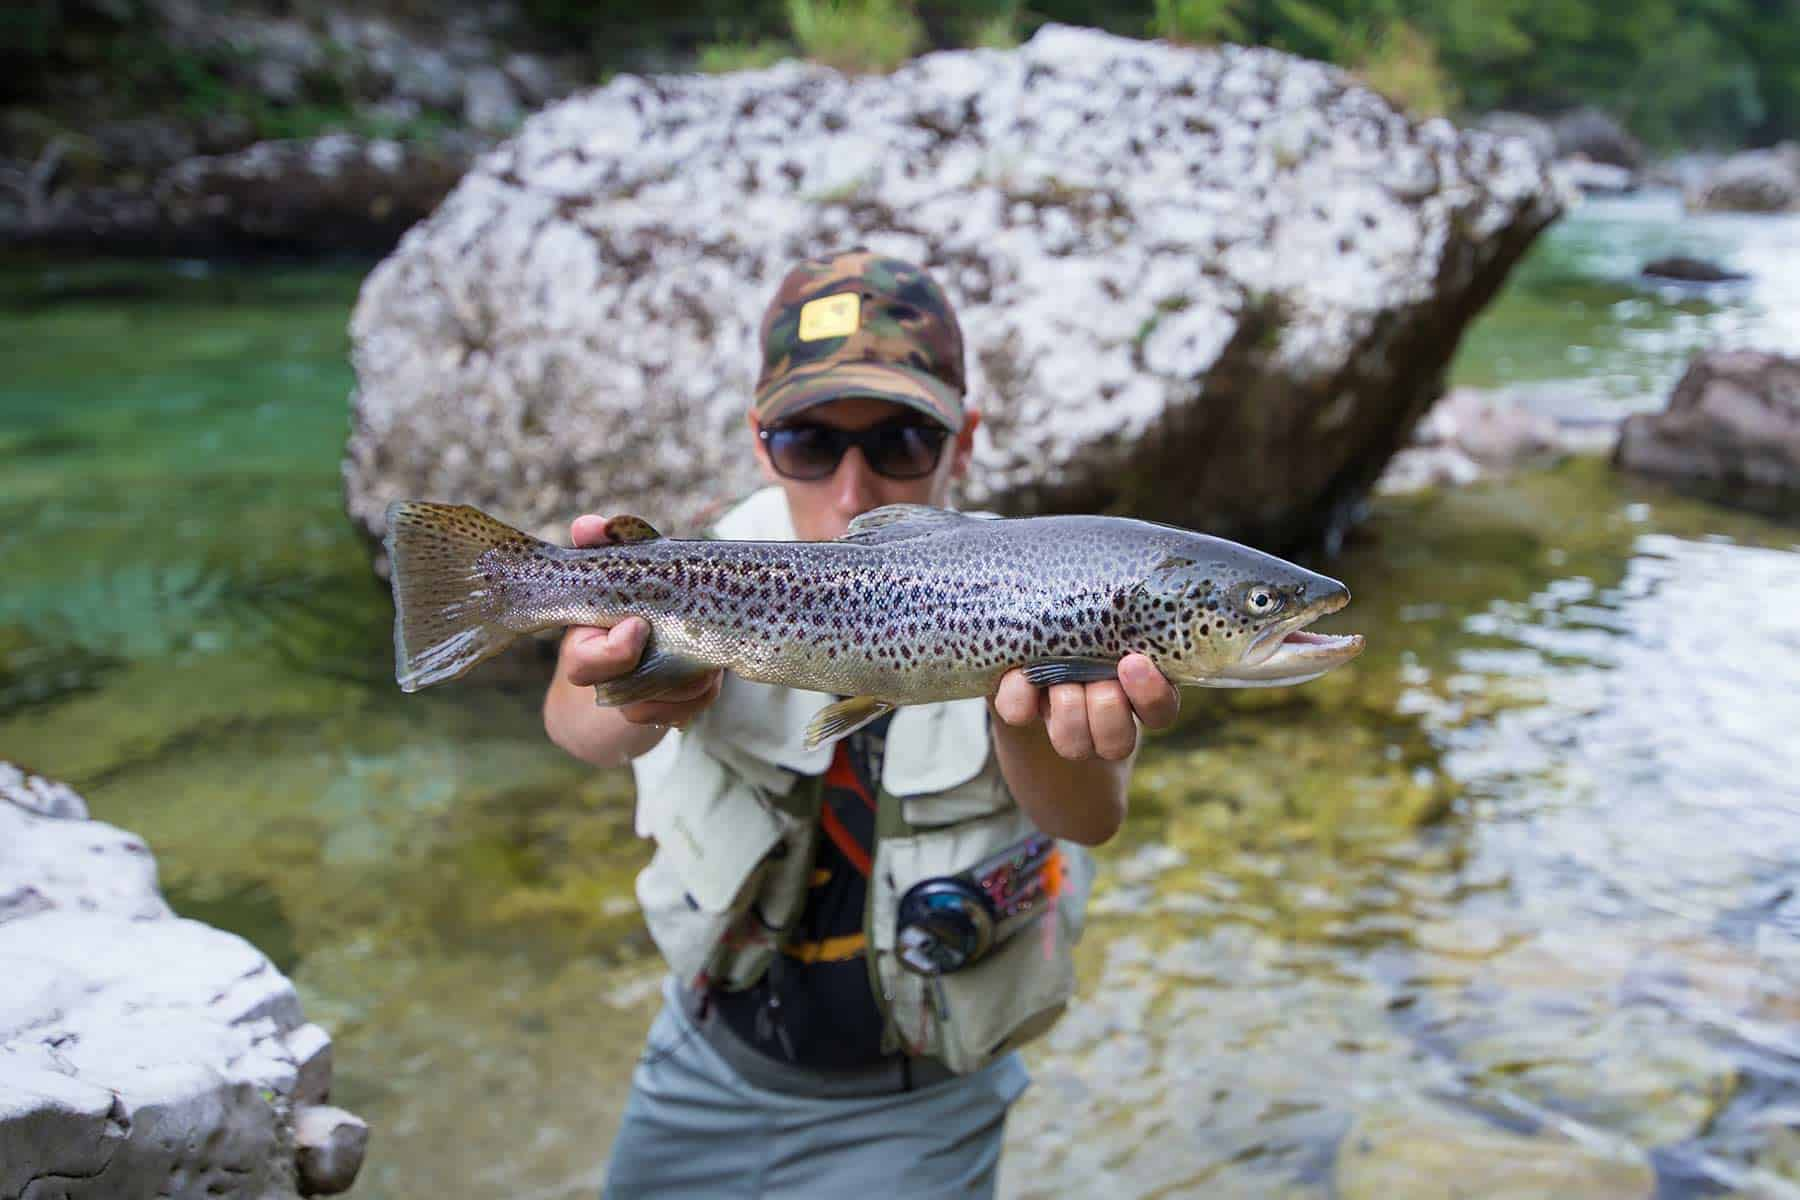 Fisherman holding a brown trout in river